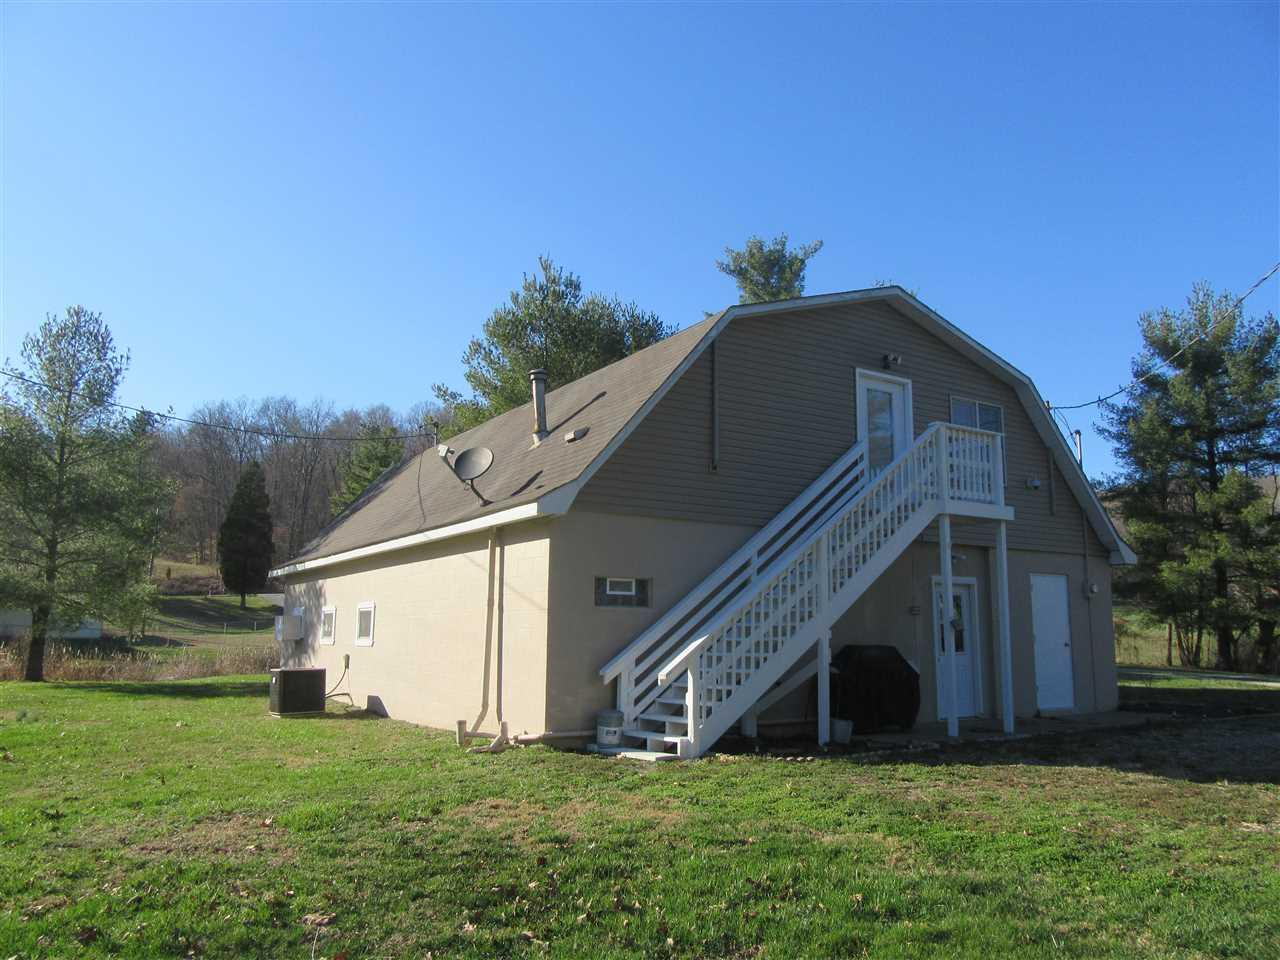 Indiana perry county cannelton - Cannelton Real Estate Find Homes For Sale In Cannelton In Century 21